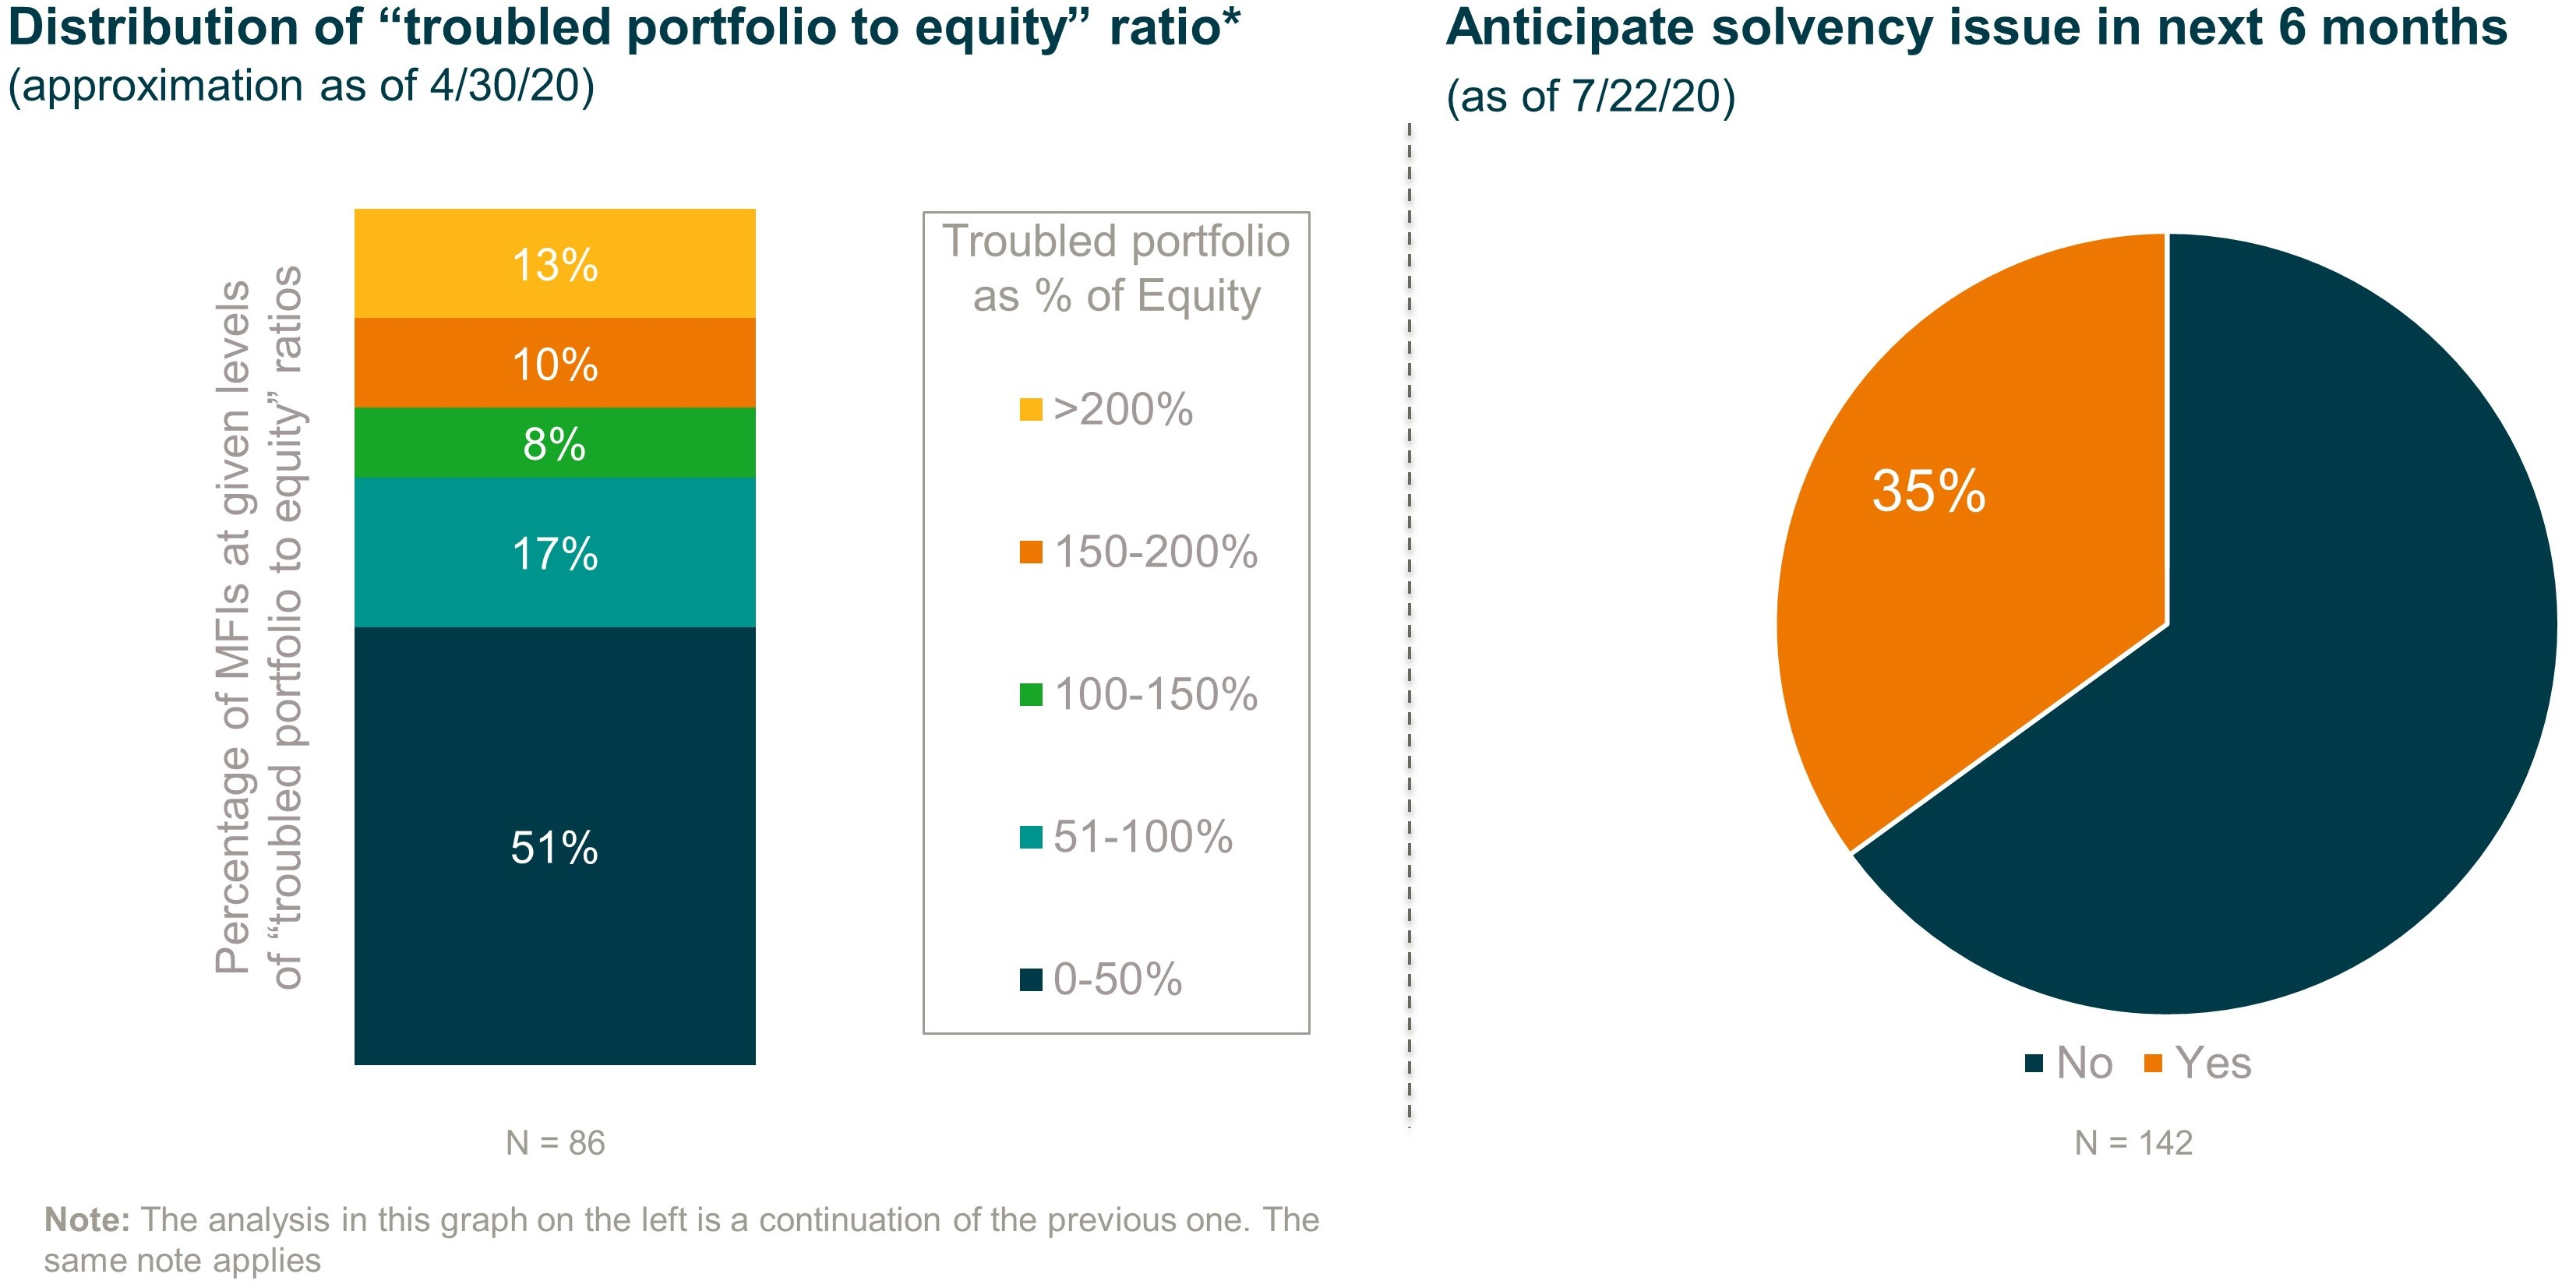 Percentage of microfinance providers anticipating solvency issues in next six months, along with distribution of troubled portfolio to equity ratio